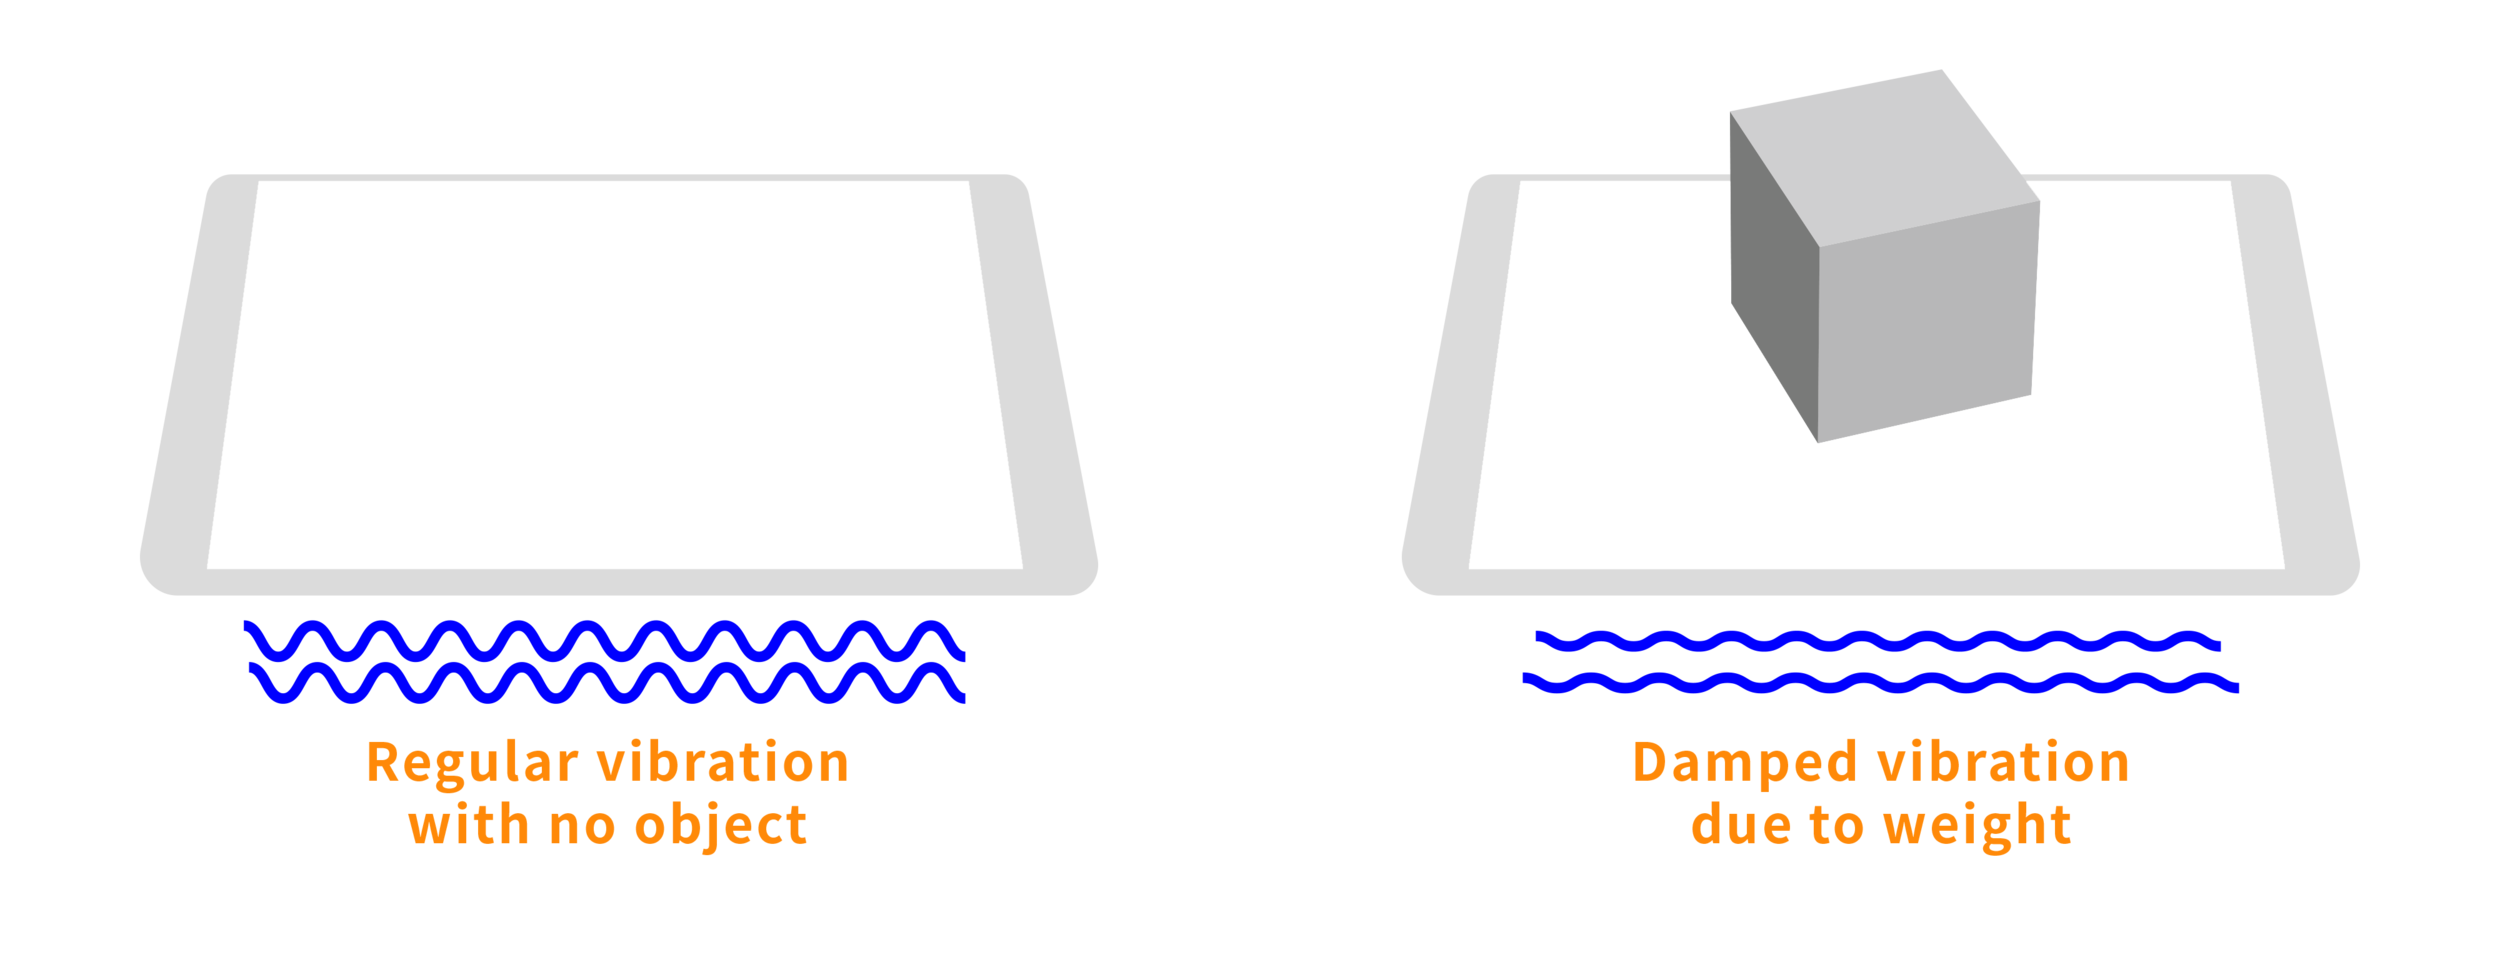 By calculating the deviance in damped vibration, I approximated the weight of an object place above.